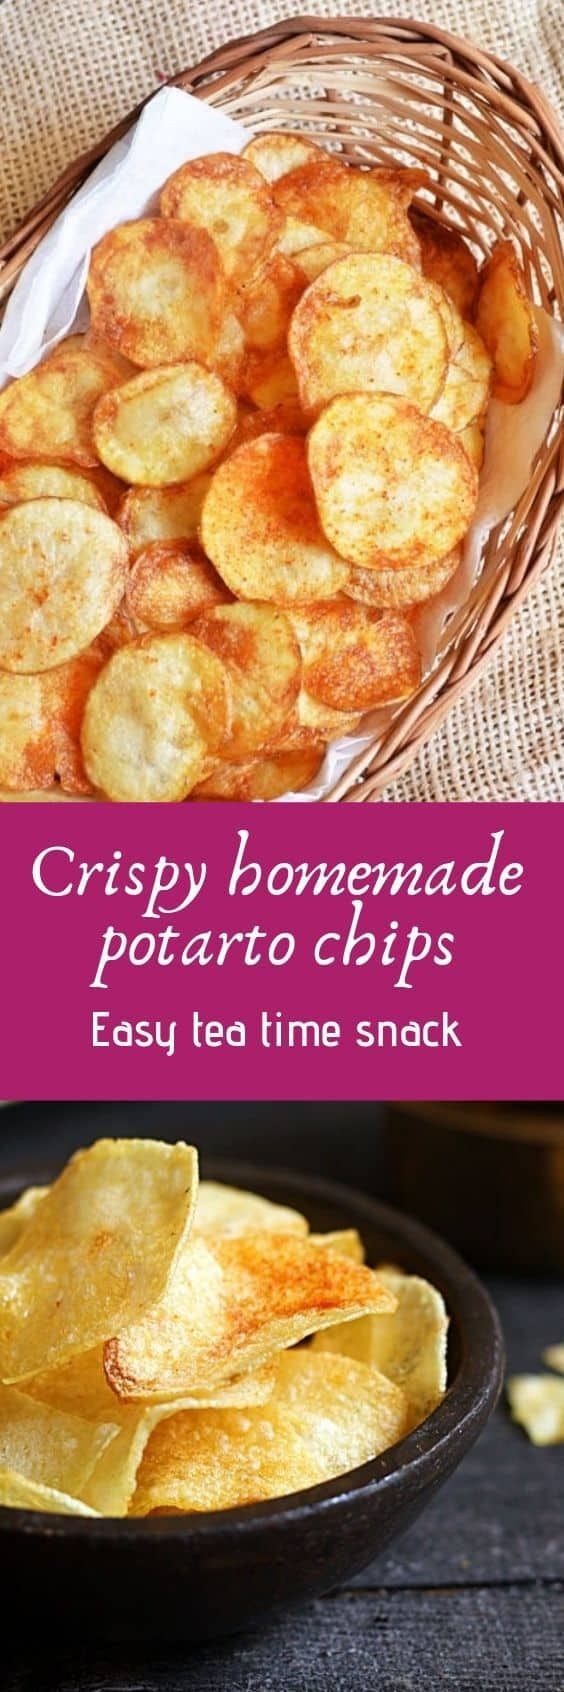 Potato chips recipe- sharing my easy tried and tested recipe for making homemade potato chips. crispy, light and very delicious potato chips that you can flavor as you please. It is really easy and with few tips you can make best potato chips are home. Here is how to! Recipe via